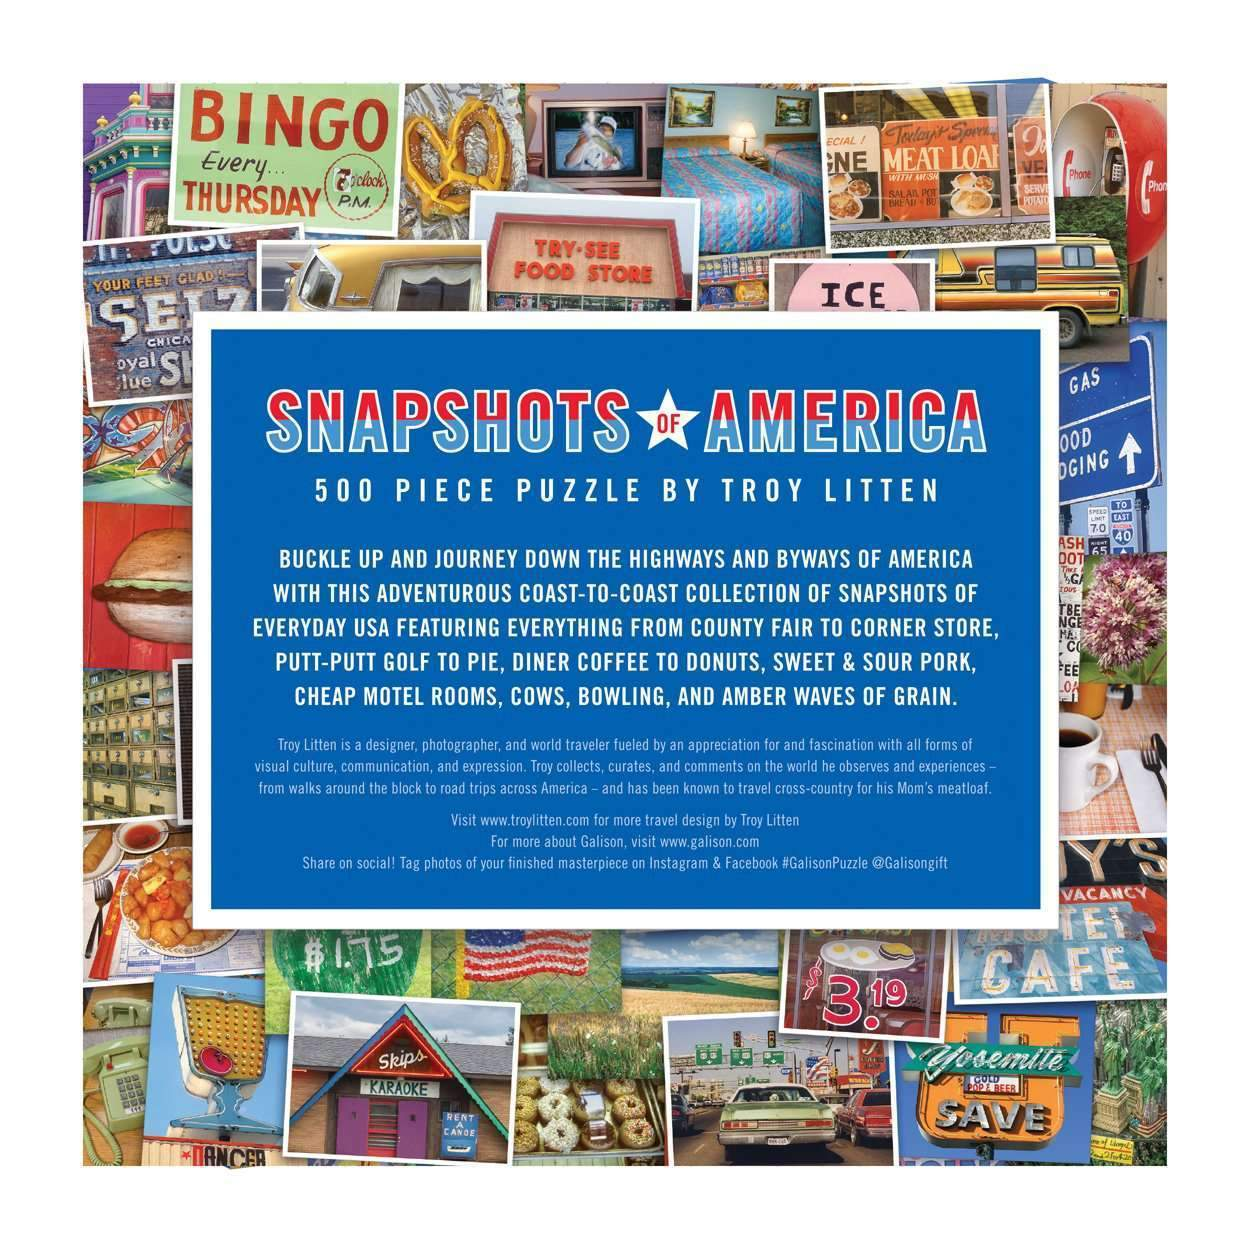 Troy Litten Snapshots Of America 500 Piece Puzzle 500 Piece Puzzles Galison